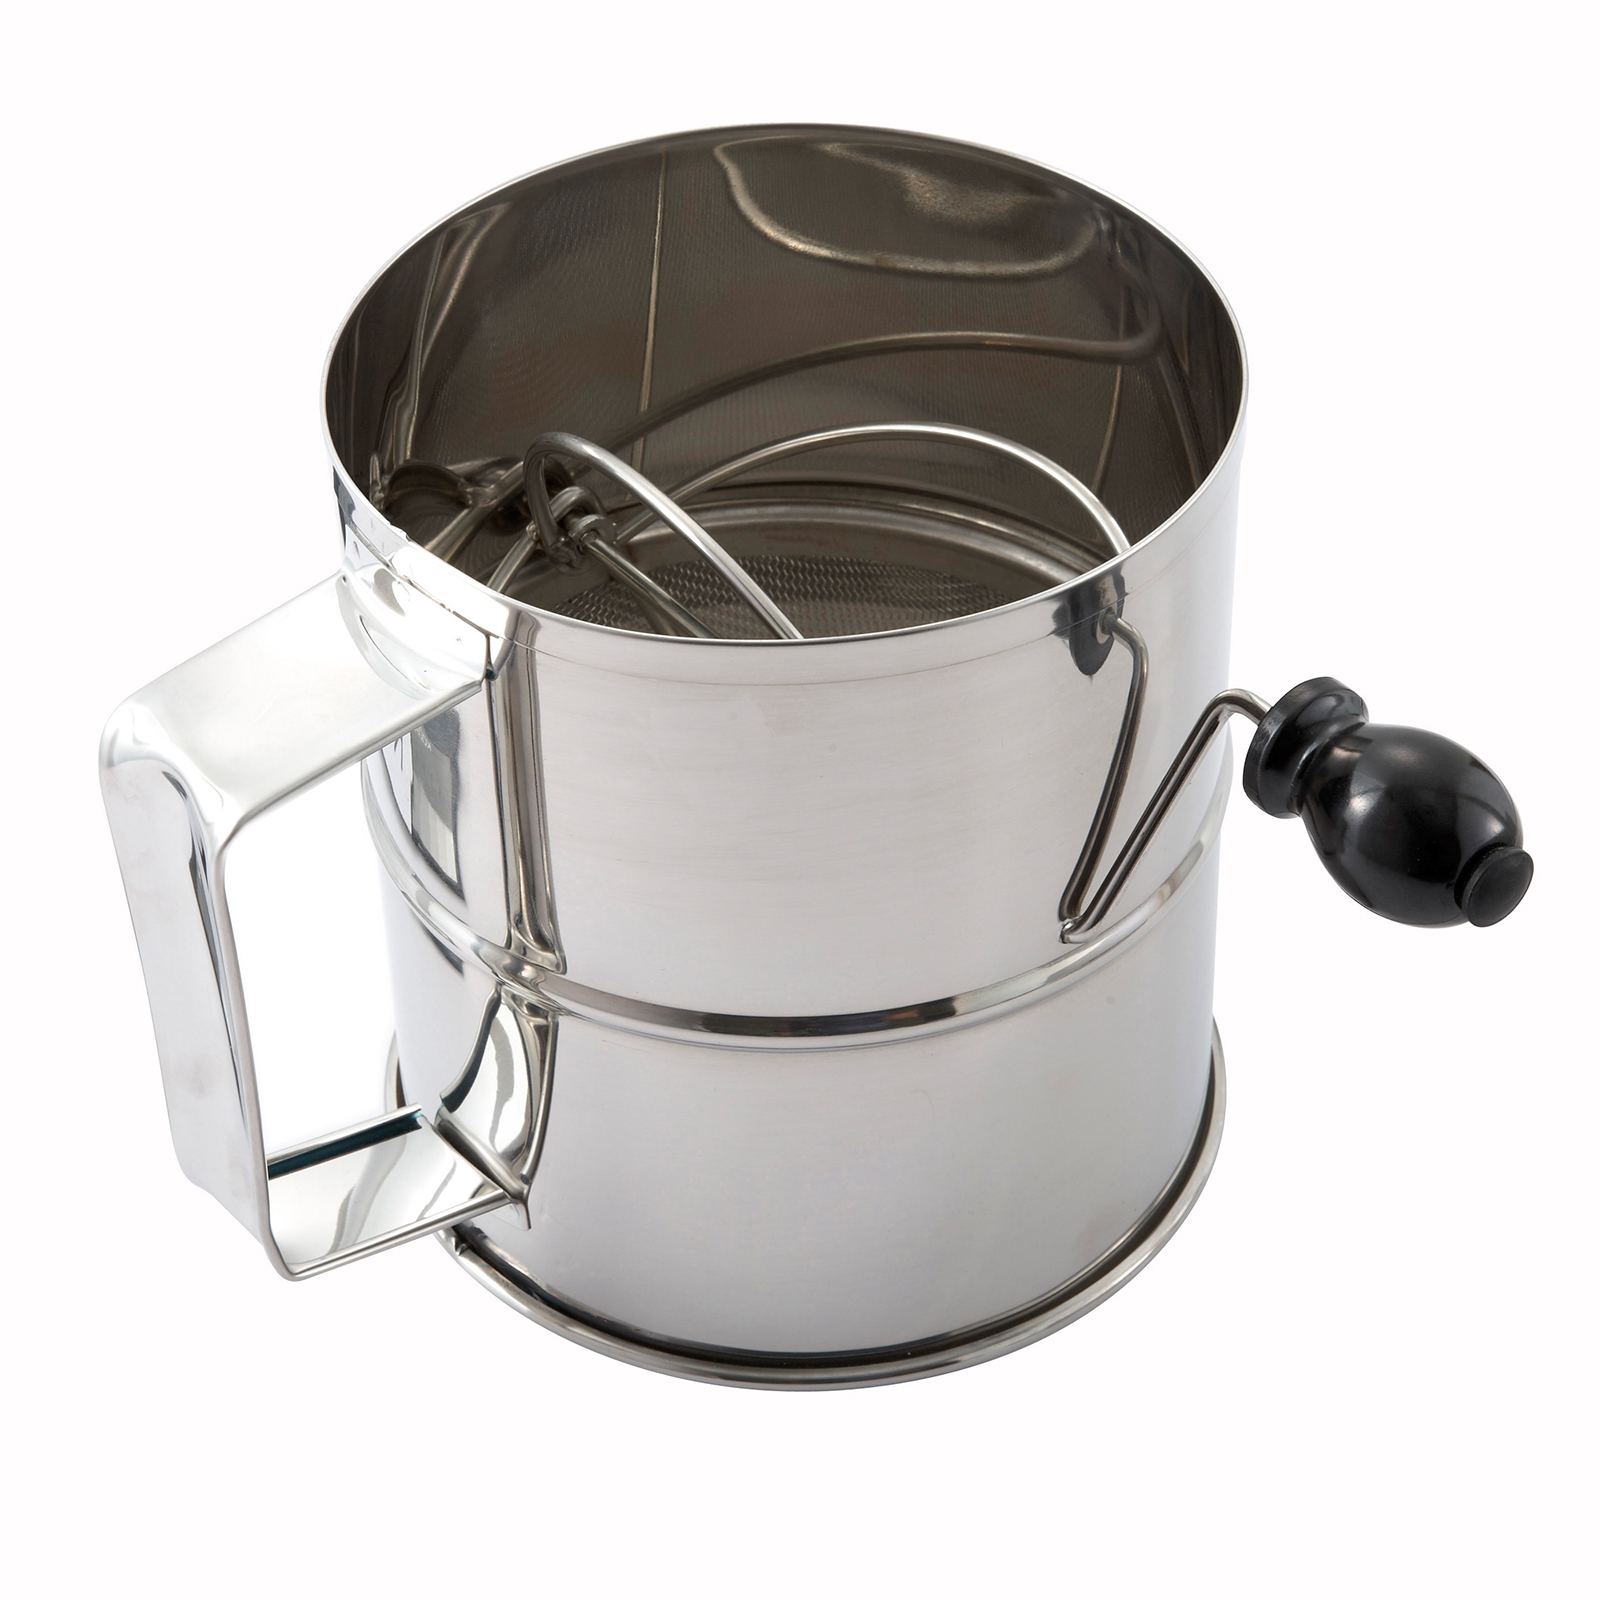 1850-32 Winco RFS-8 sifter